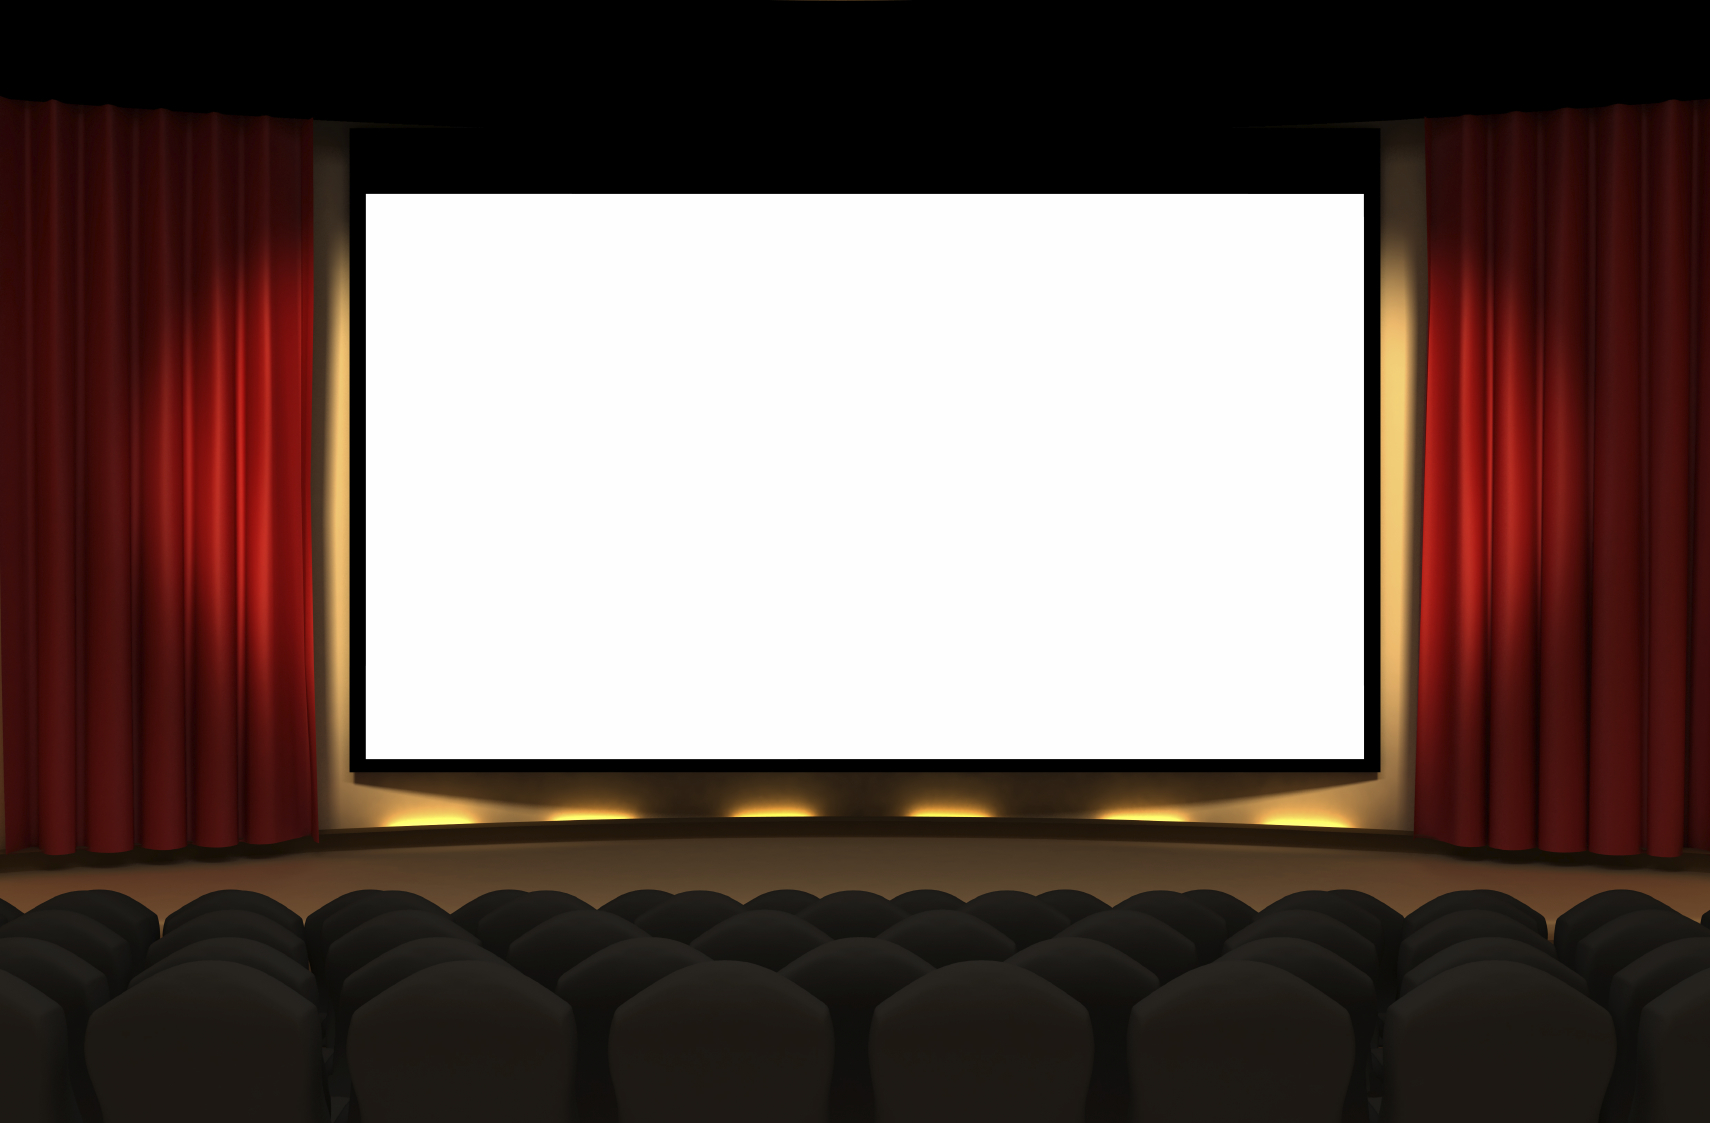 Movie Theater Curtains Clip Art Theatre Curtain Free Image #30947